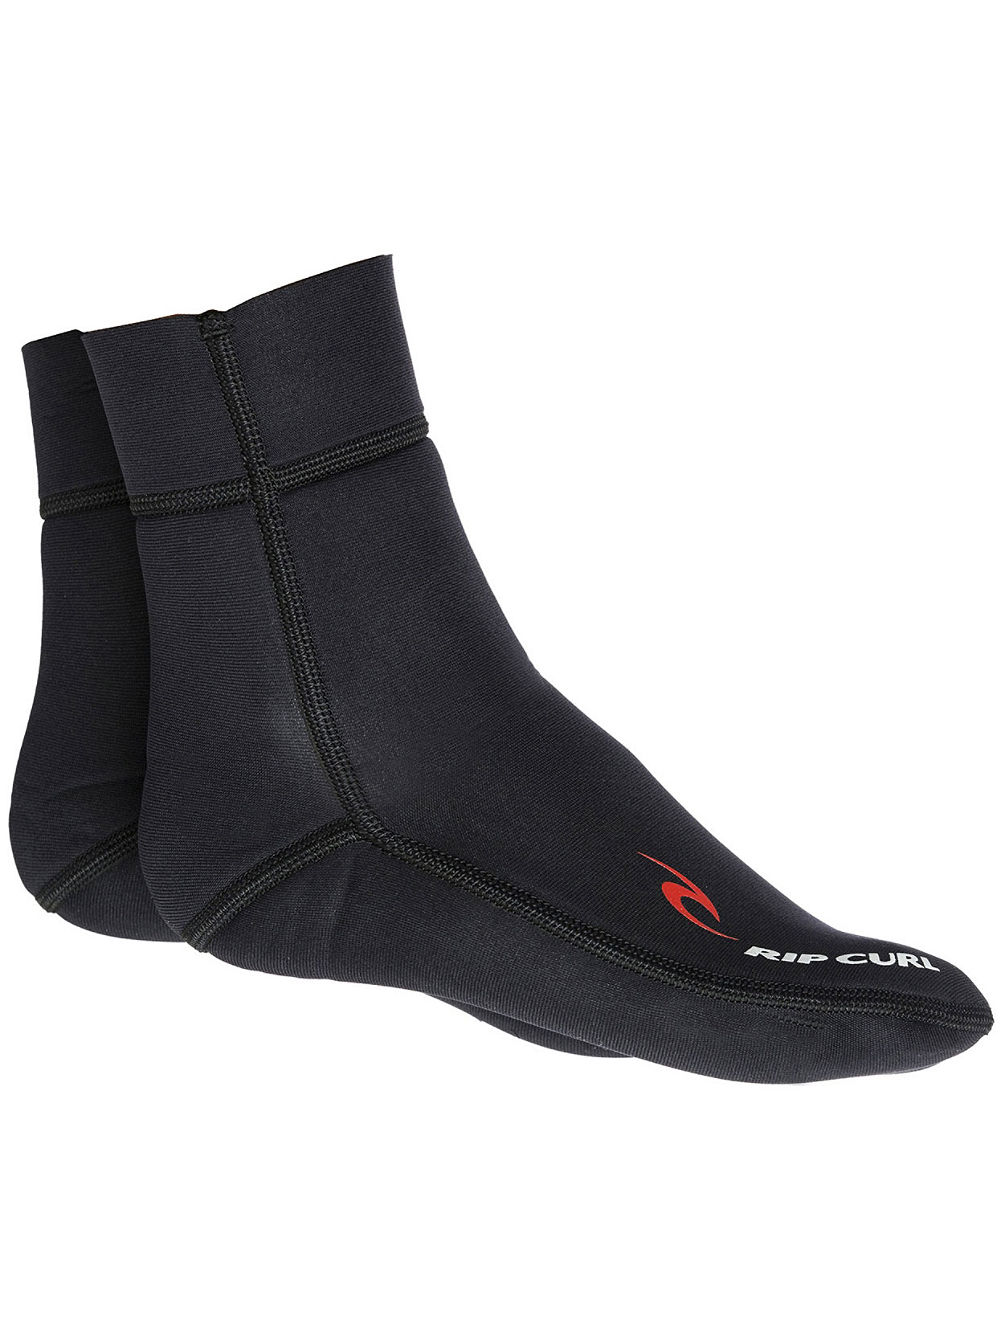 Neoprene Fin Sox Booties